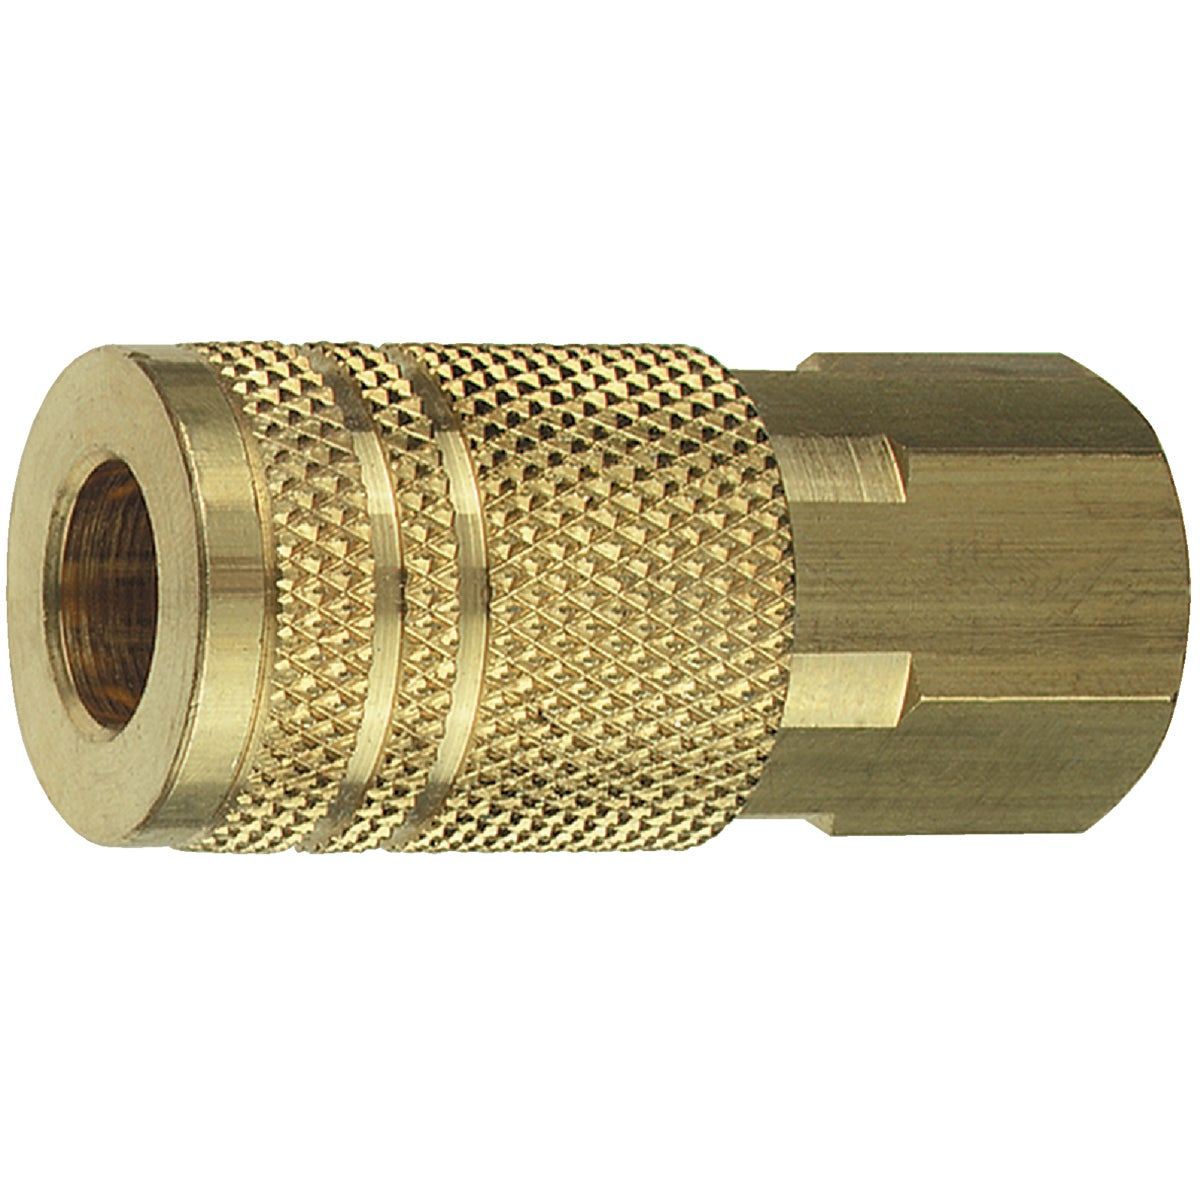 "1/4"" I/M FEMALE COUPLER - 13-235 by Plews  Lubrimatic"